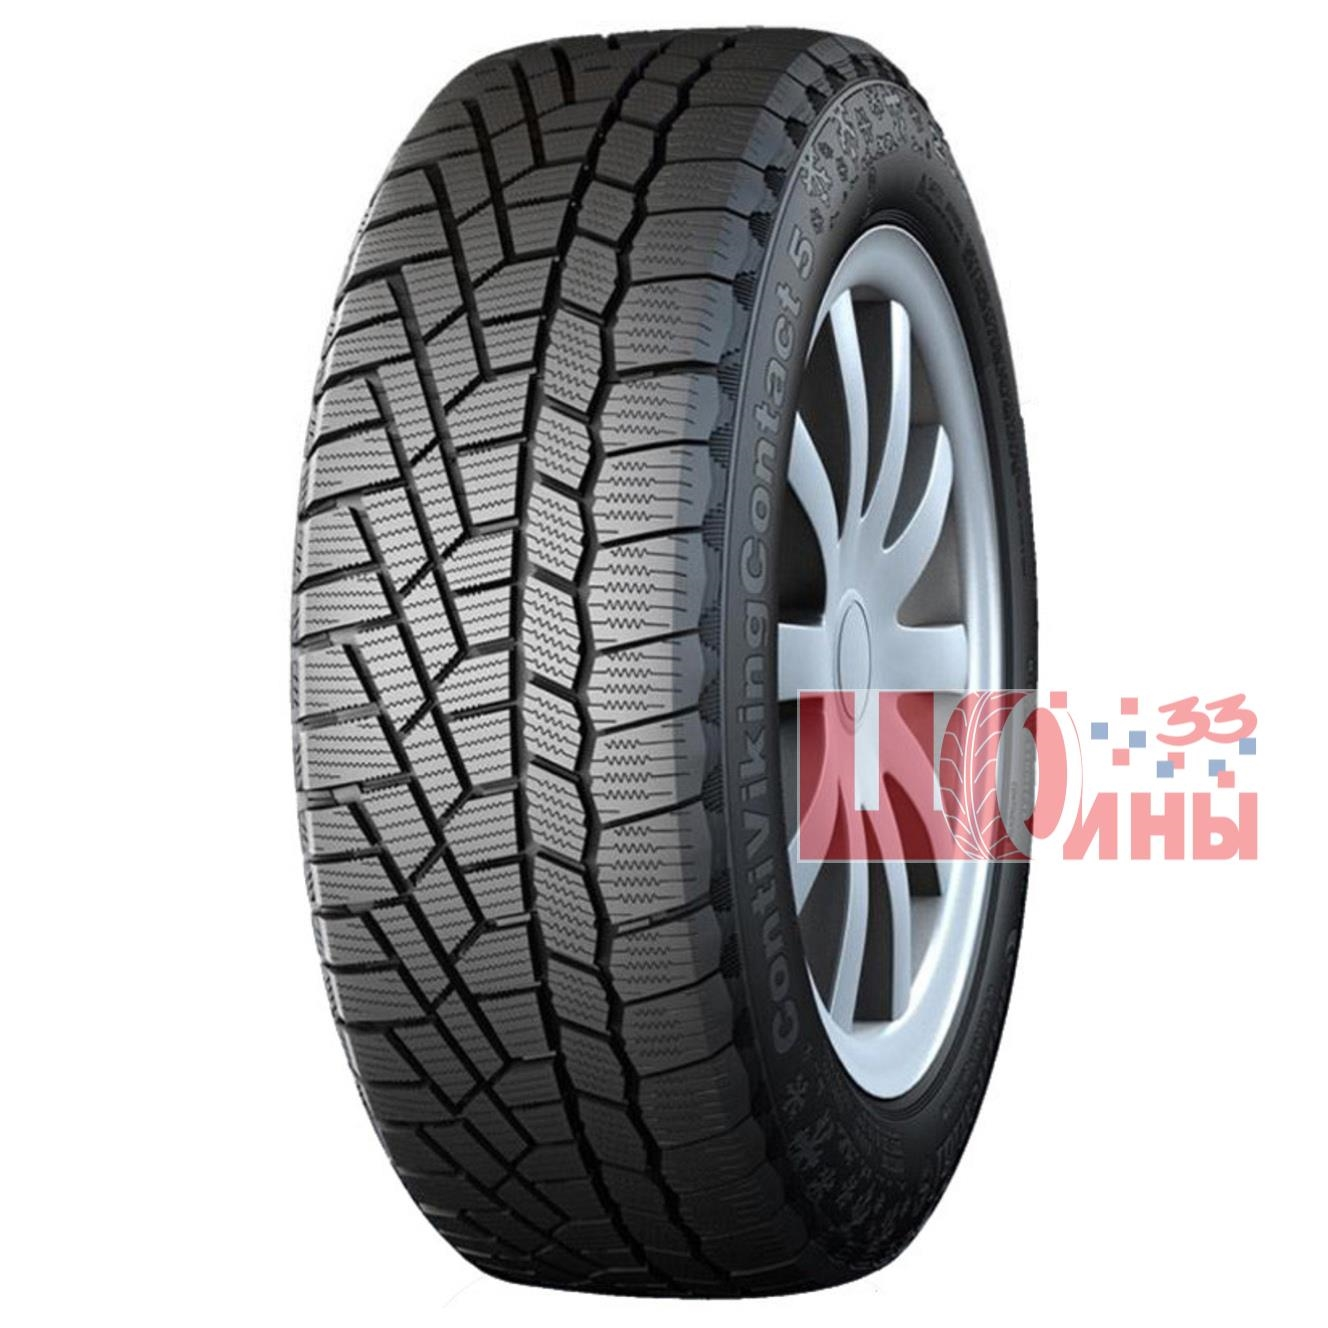 Б/У 225/50 R17 Зима CONTINENTAL C.Viking Contact-5 Кат. 4